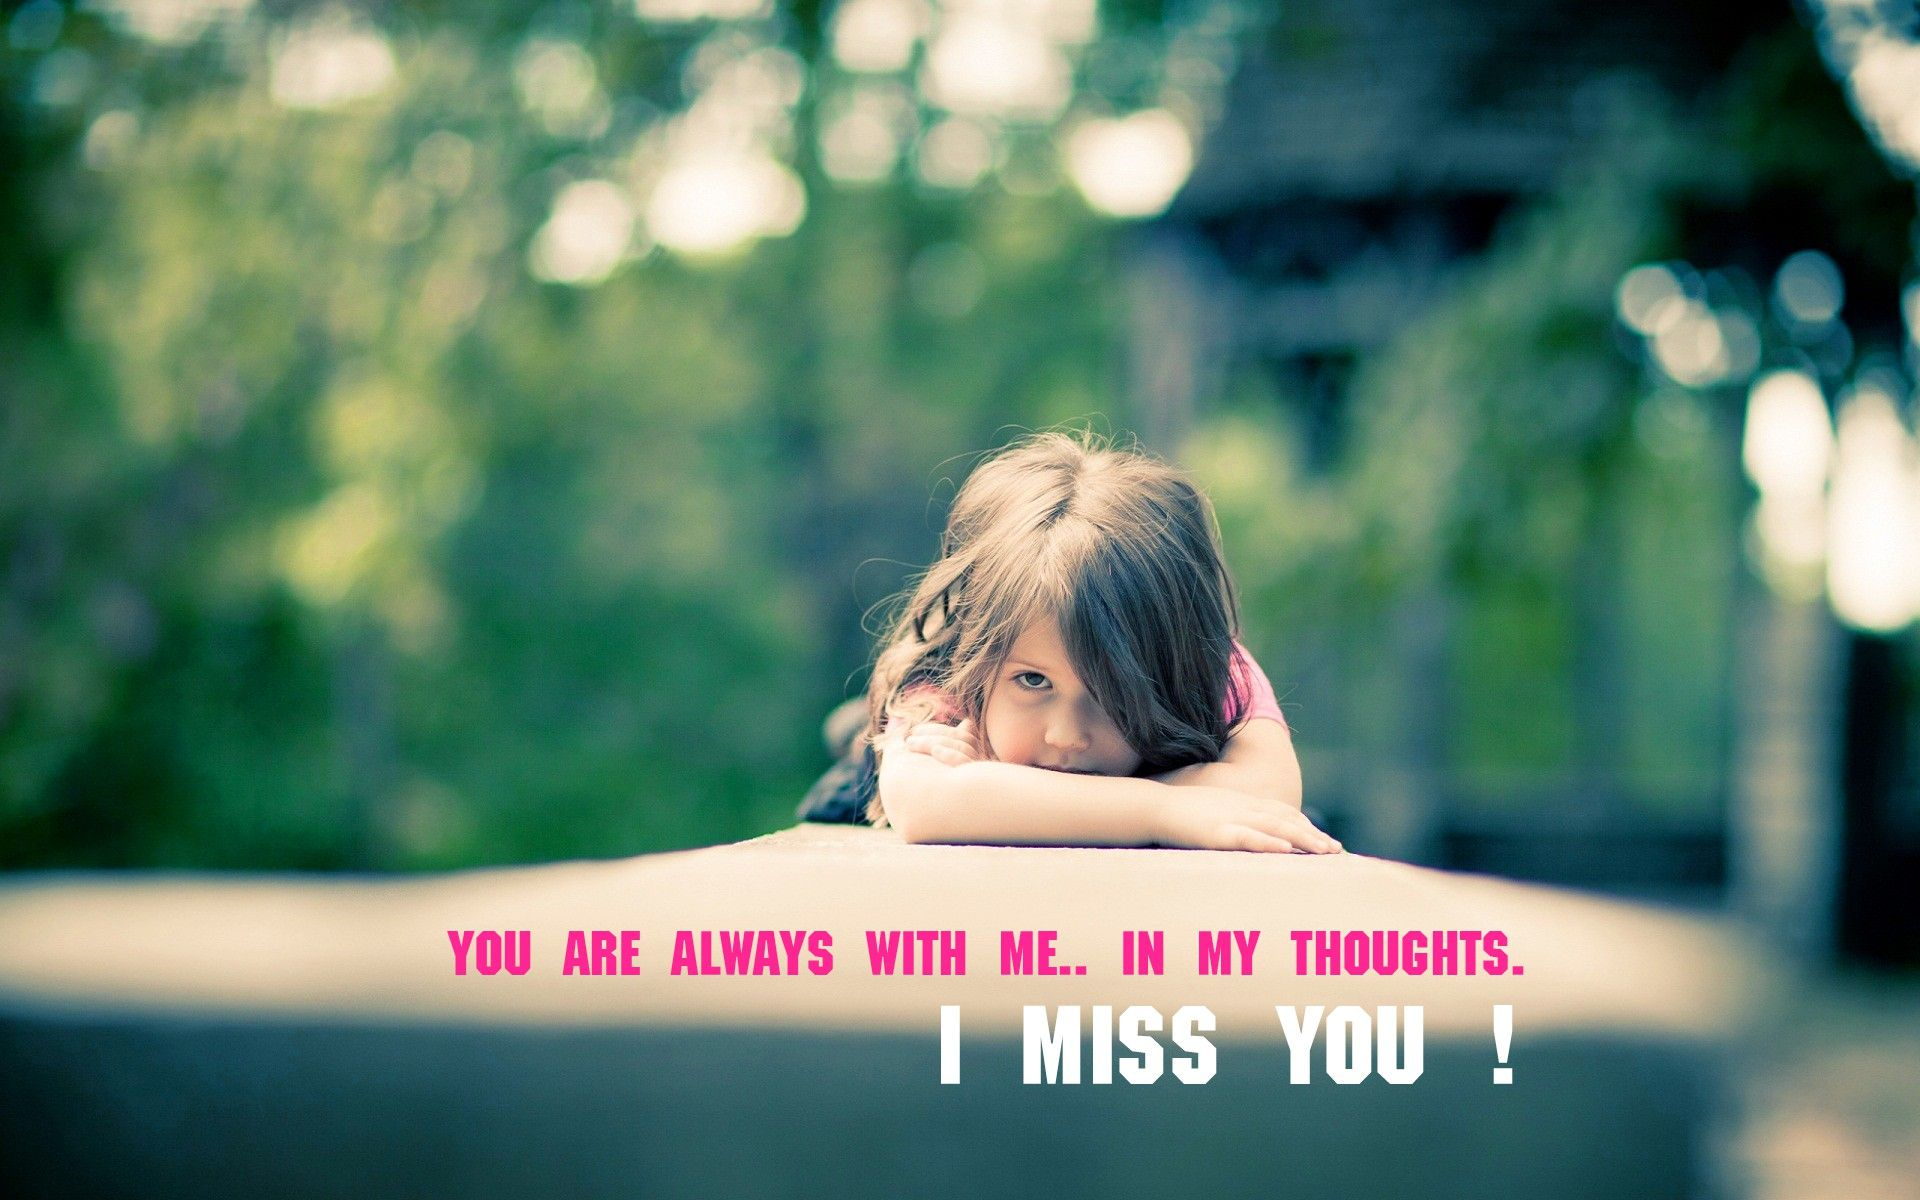 Cute little Girl Miss You images with Quotes